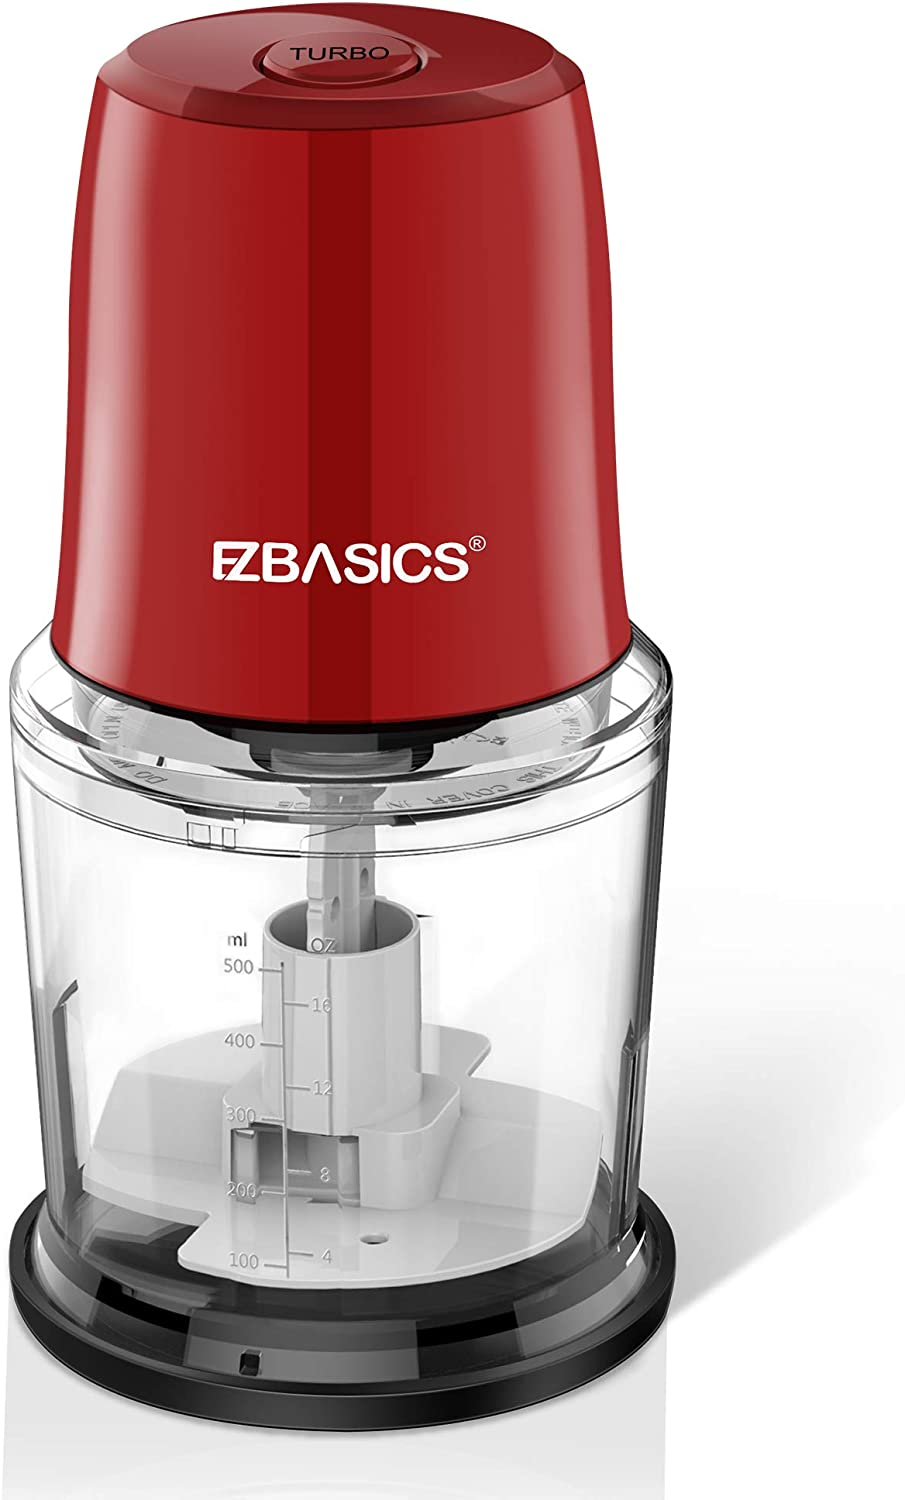 EZBASICS Food Processor, Electric Food Chopper for Vegetables, Fruits, Nuts, Ice Cubes, 2 Speed Kitchen Grinder With Sharp Blades, 2 Cup Capacity (Red)